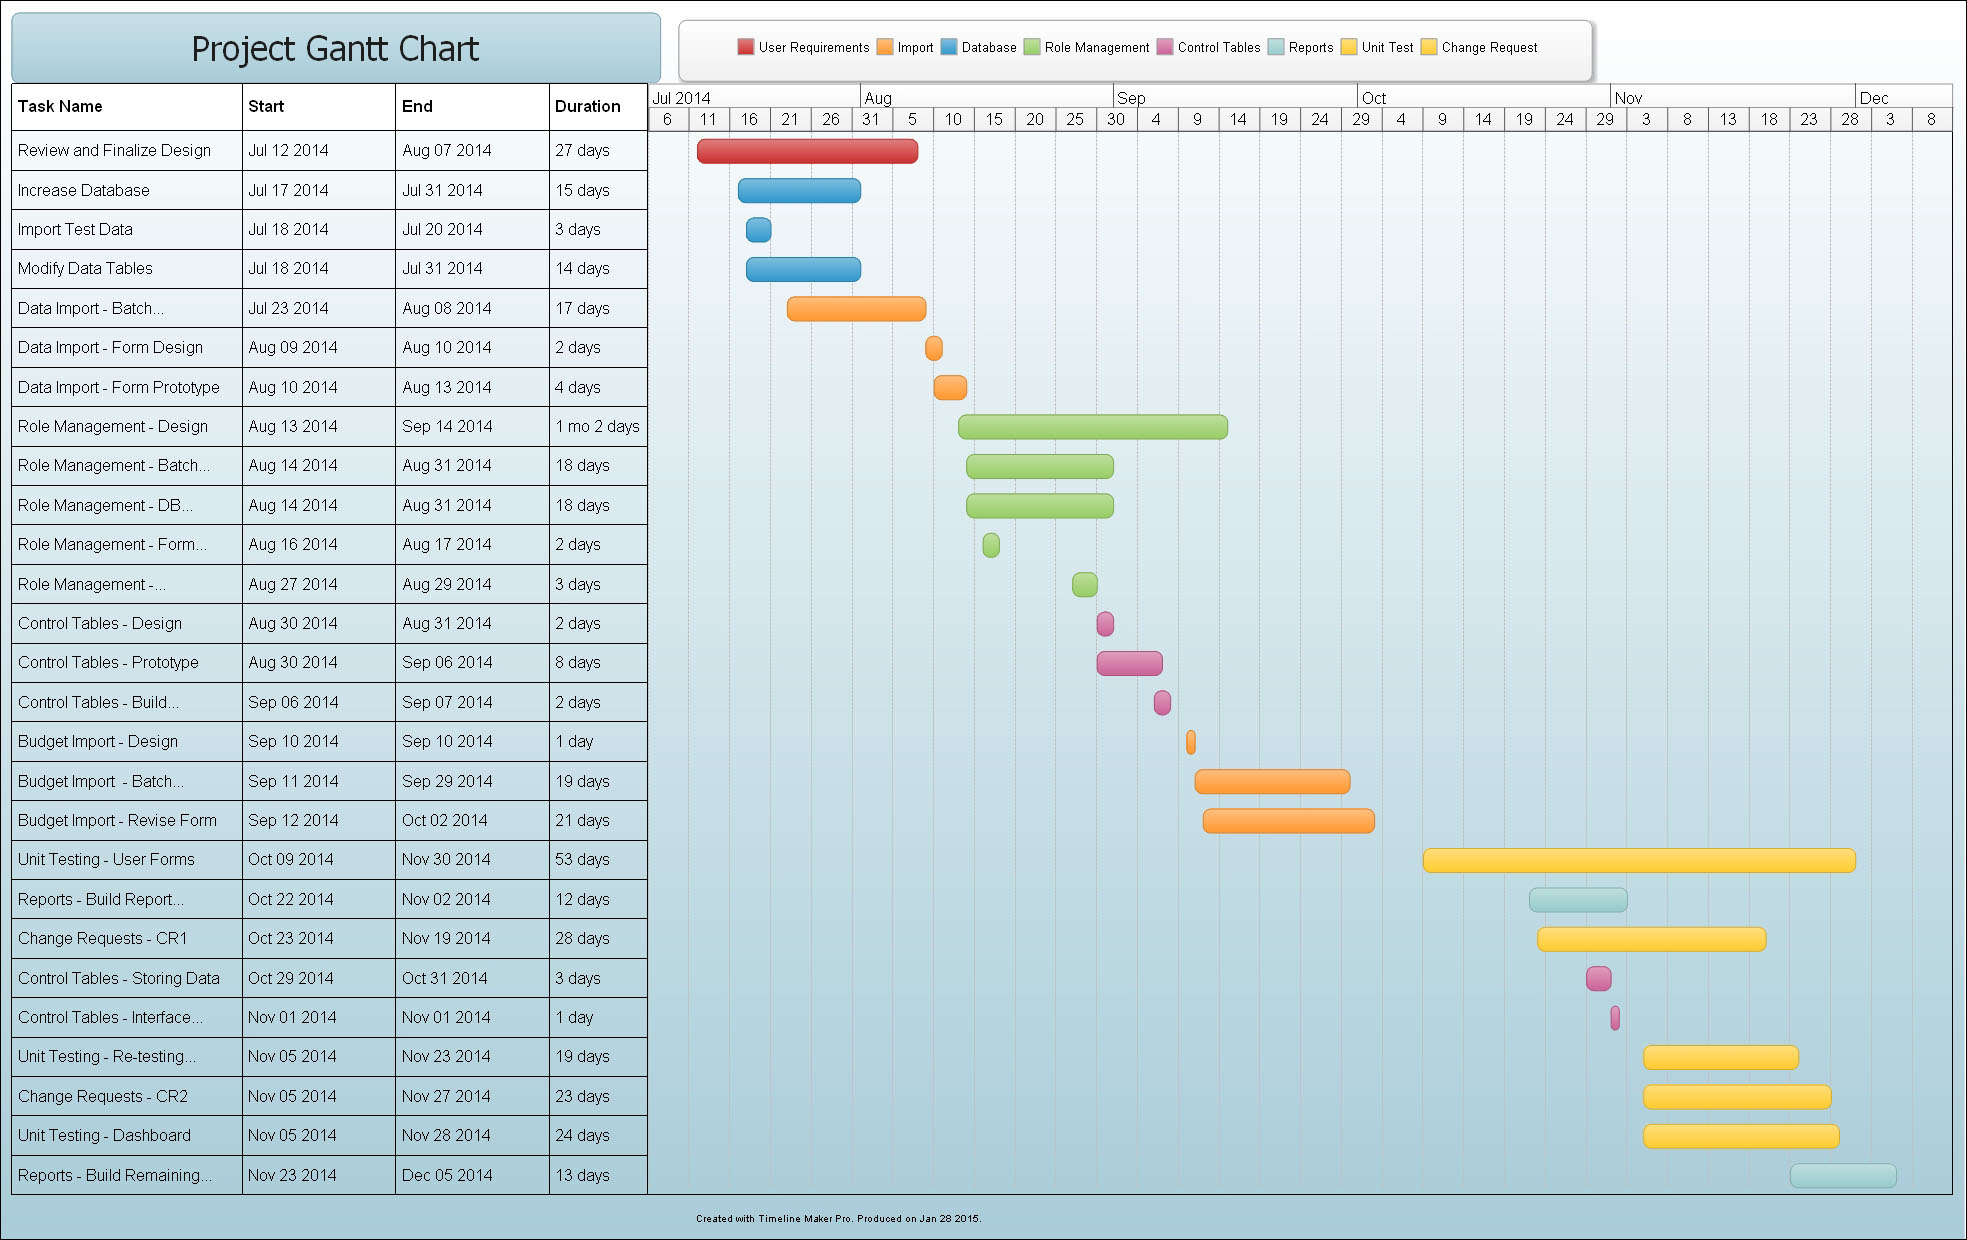 Project Plan Sample Gantt Chart Created By Timeline Maker Pro